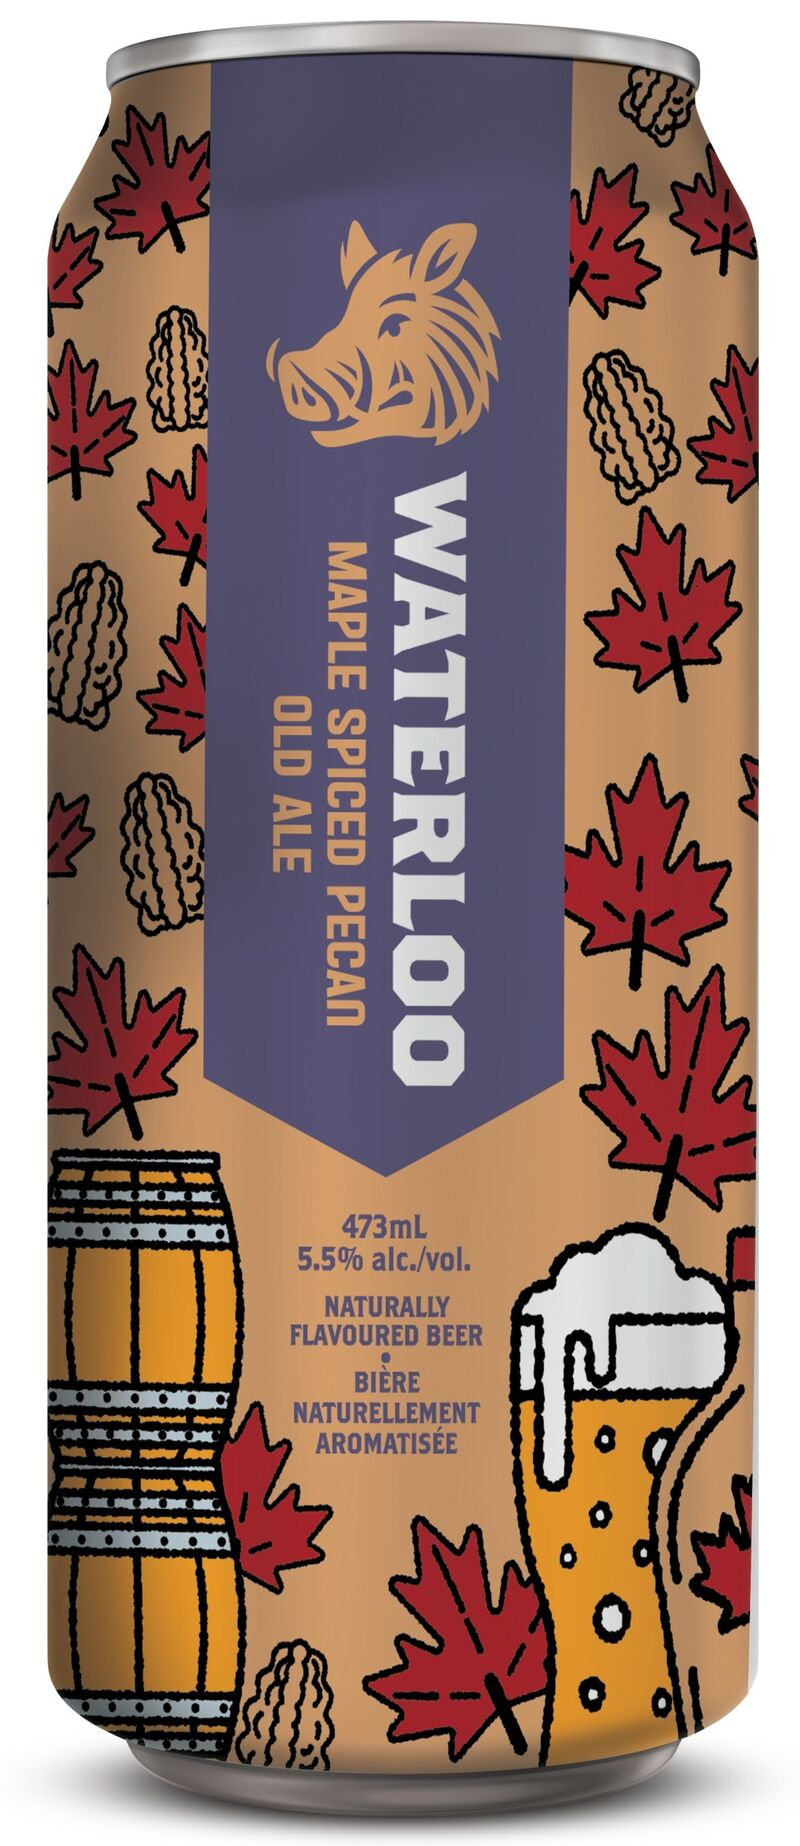 Maple-Flavored Spiced Beers